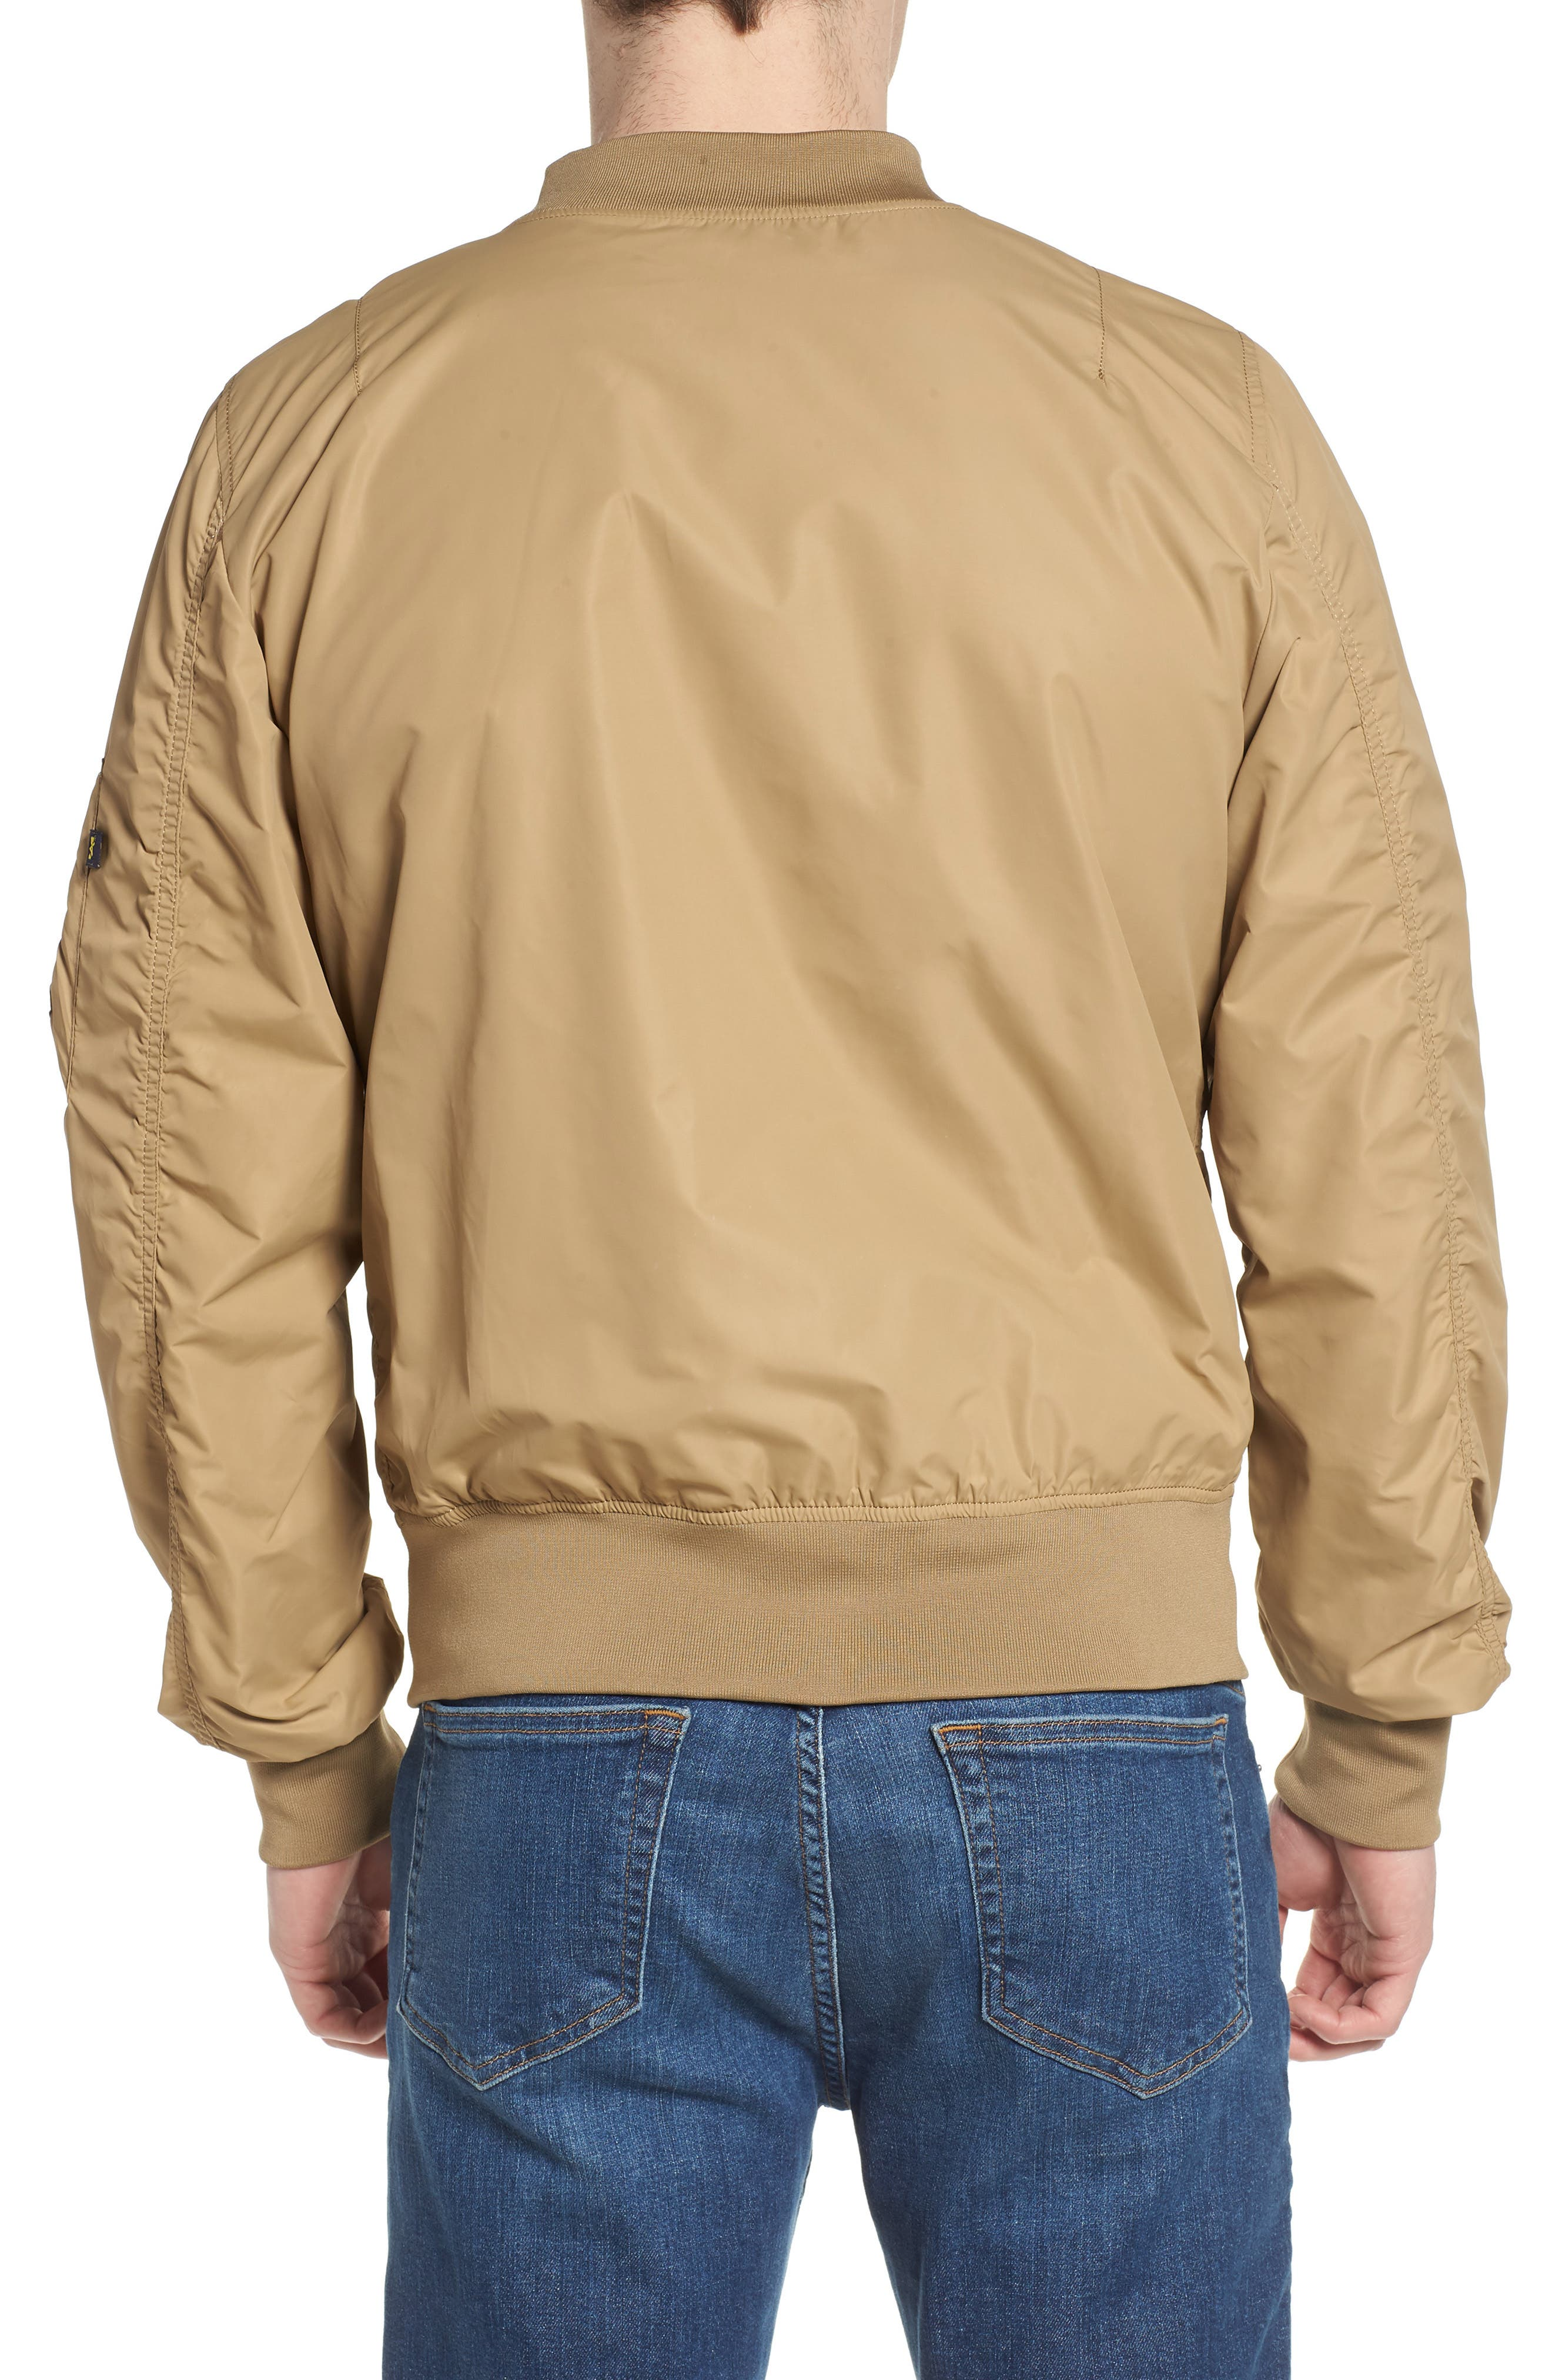 LB-2 Scout Reversible Flight Jacket,                             Alternate thumbnail 10, color,